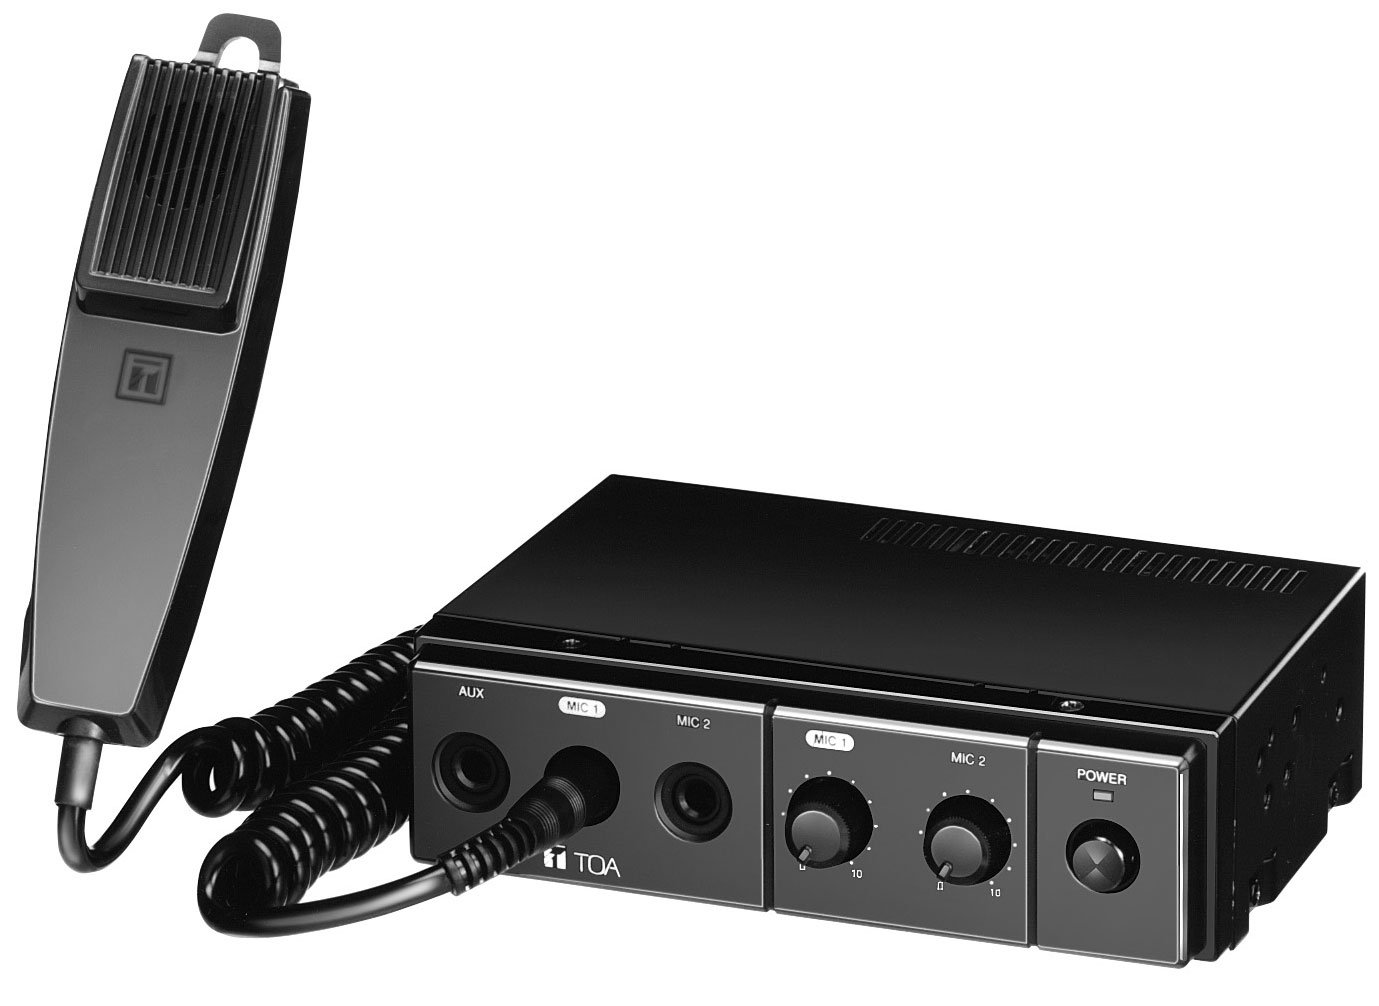 TOA CA115 Mixer/Amp, Mobile, 12VDC, 15W, With Mic CA115